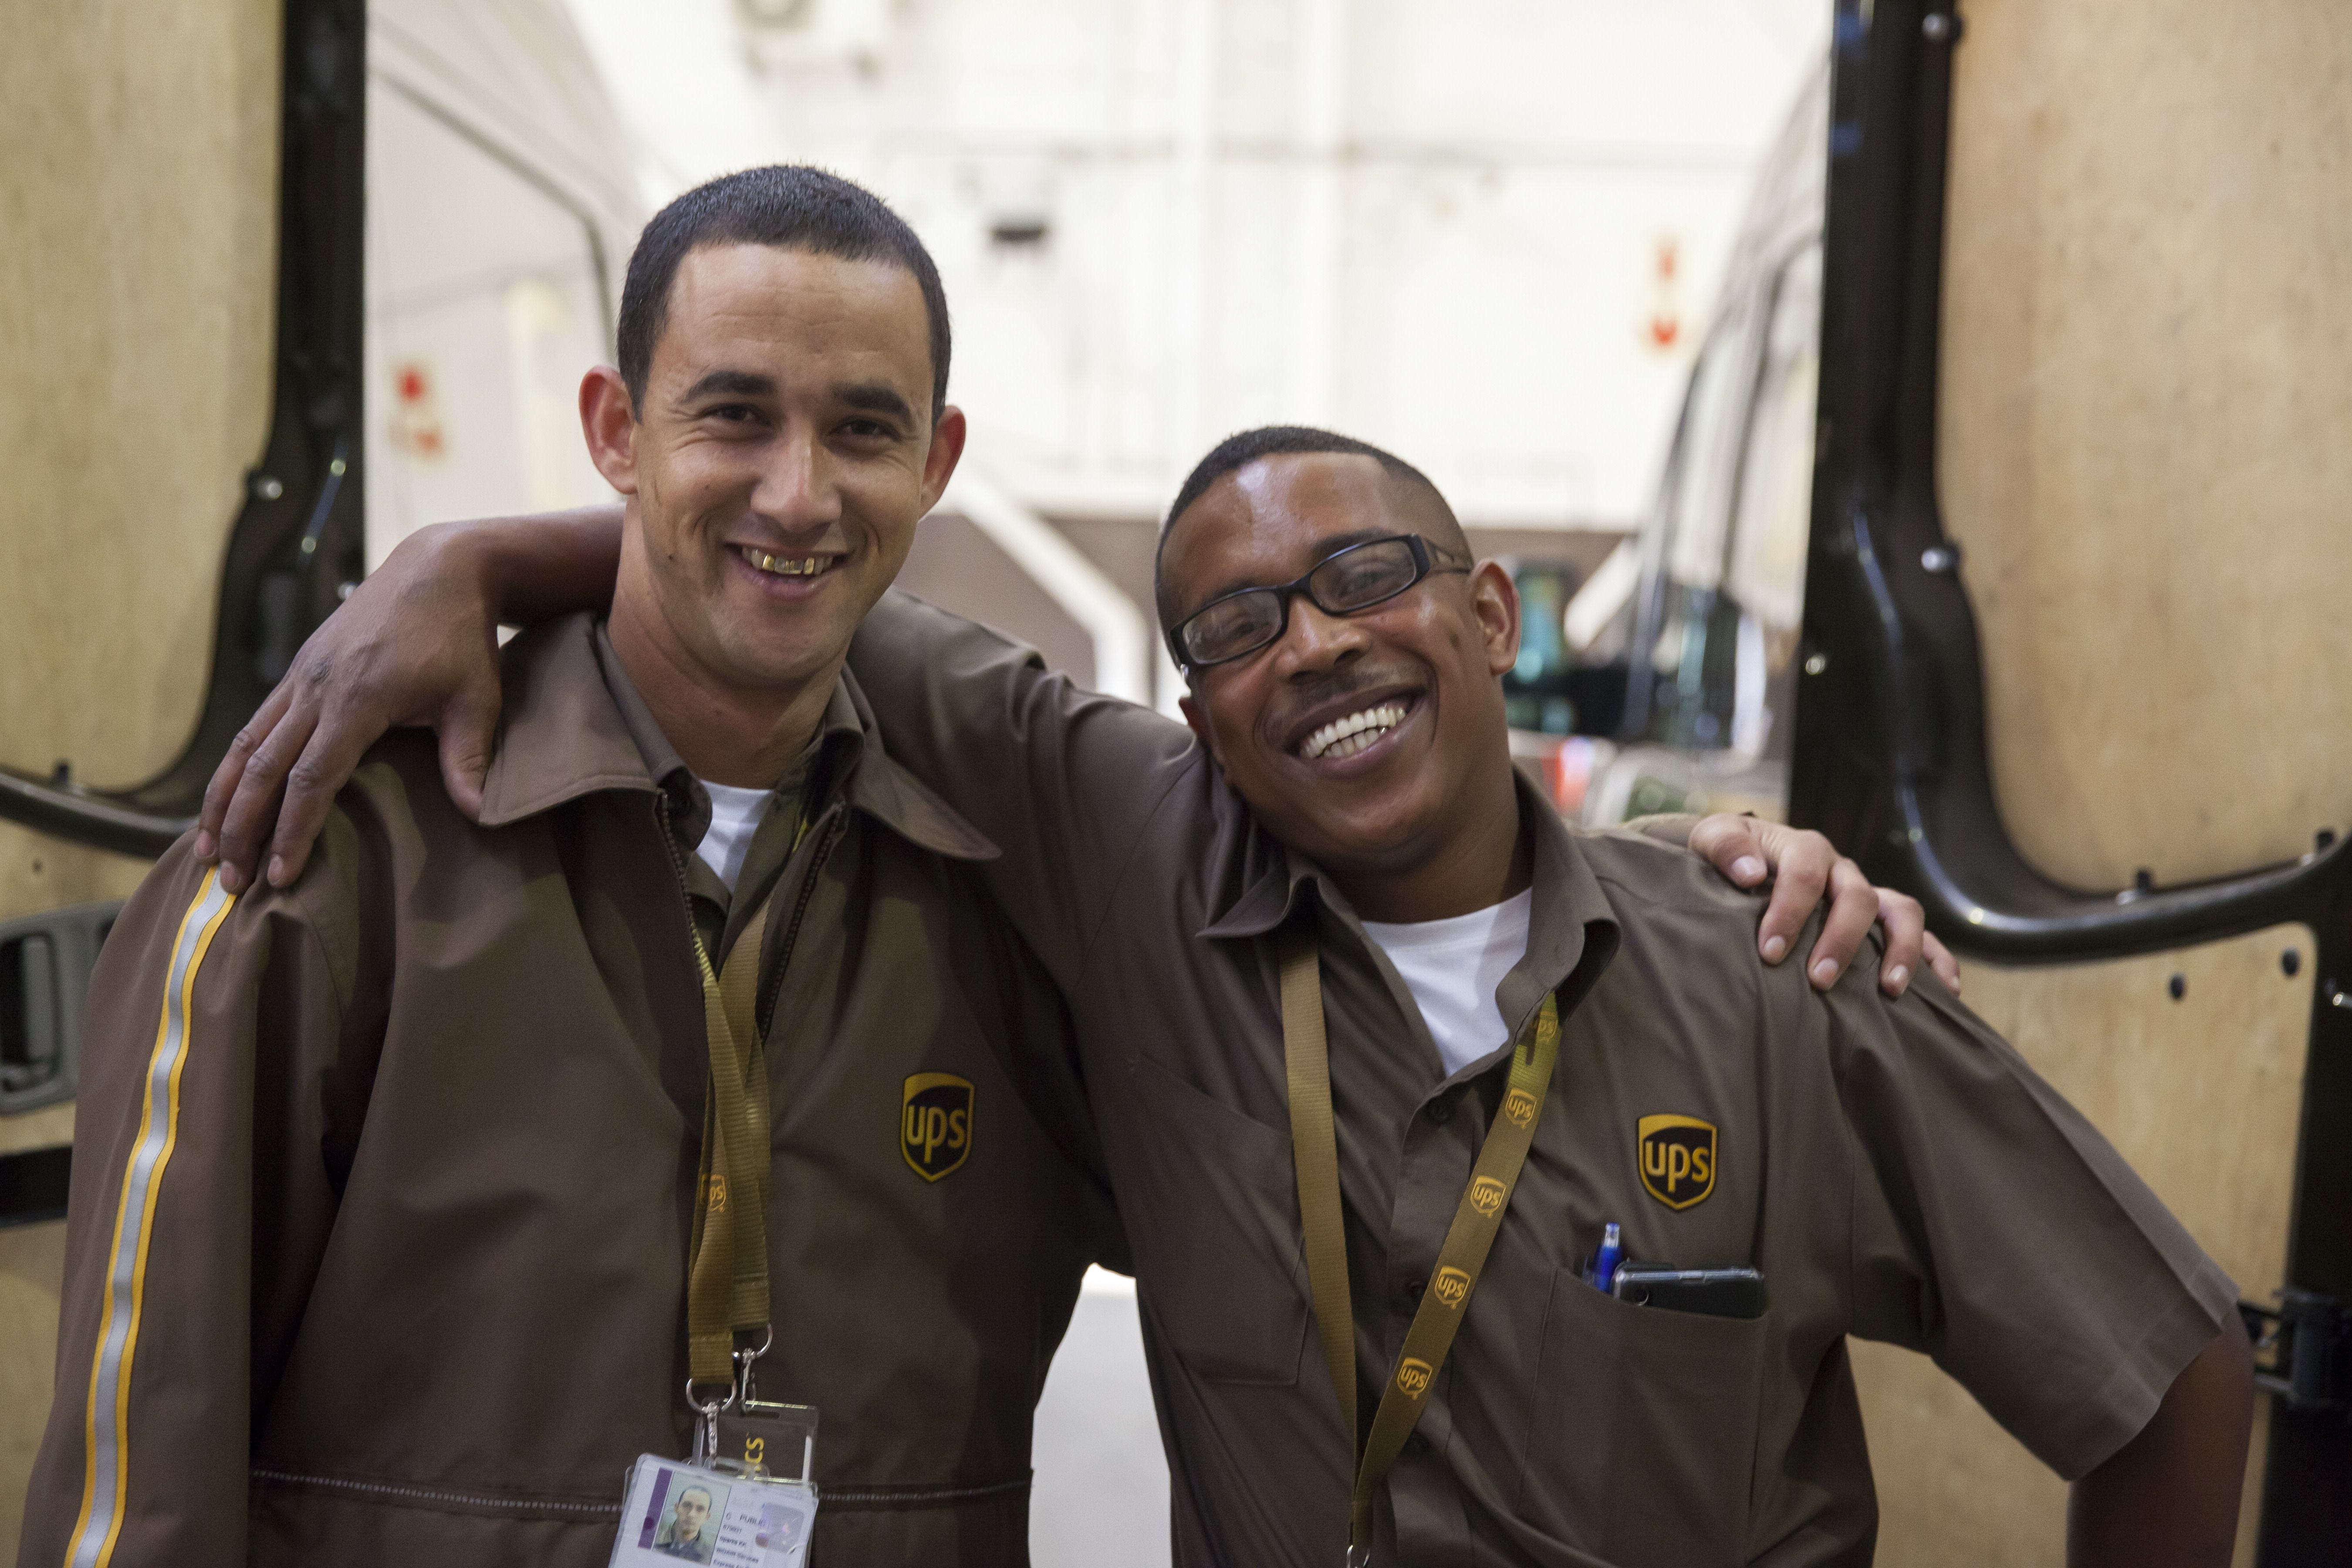 Happy Friday everyone! If you have a chance, please check out the UPS job site to view current openings in your area. http://bit.ly/1Qh1txO